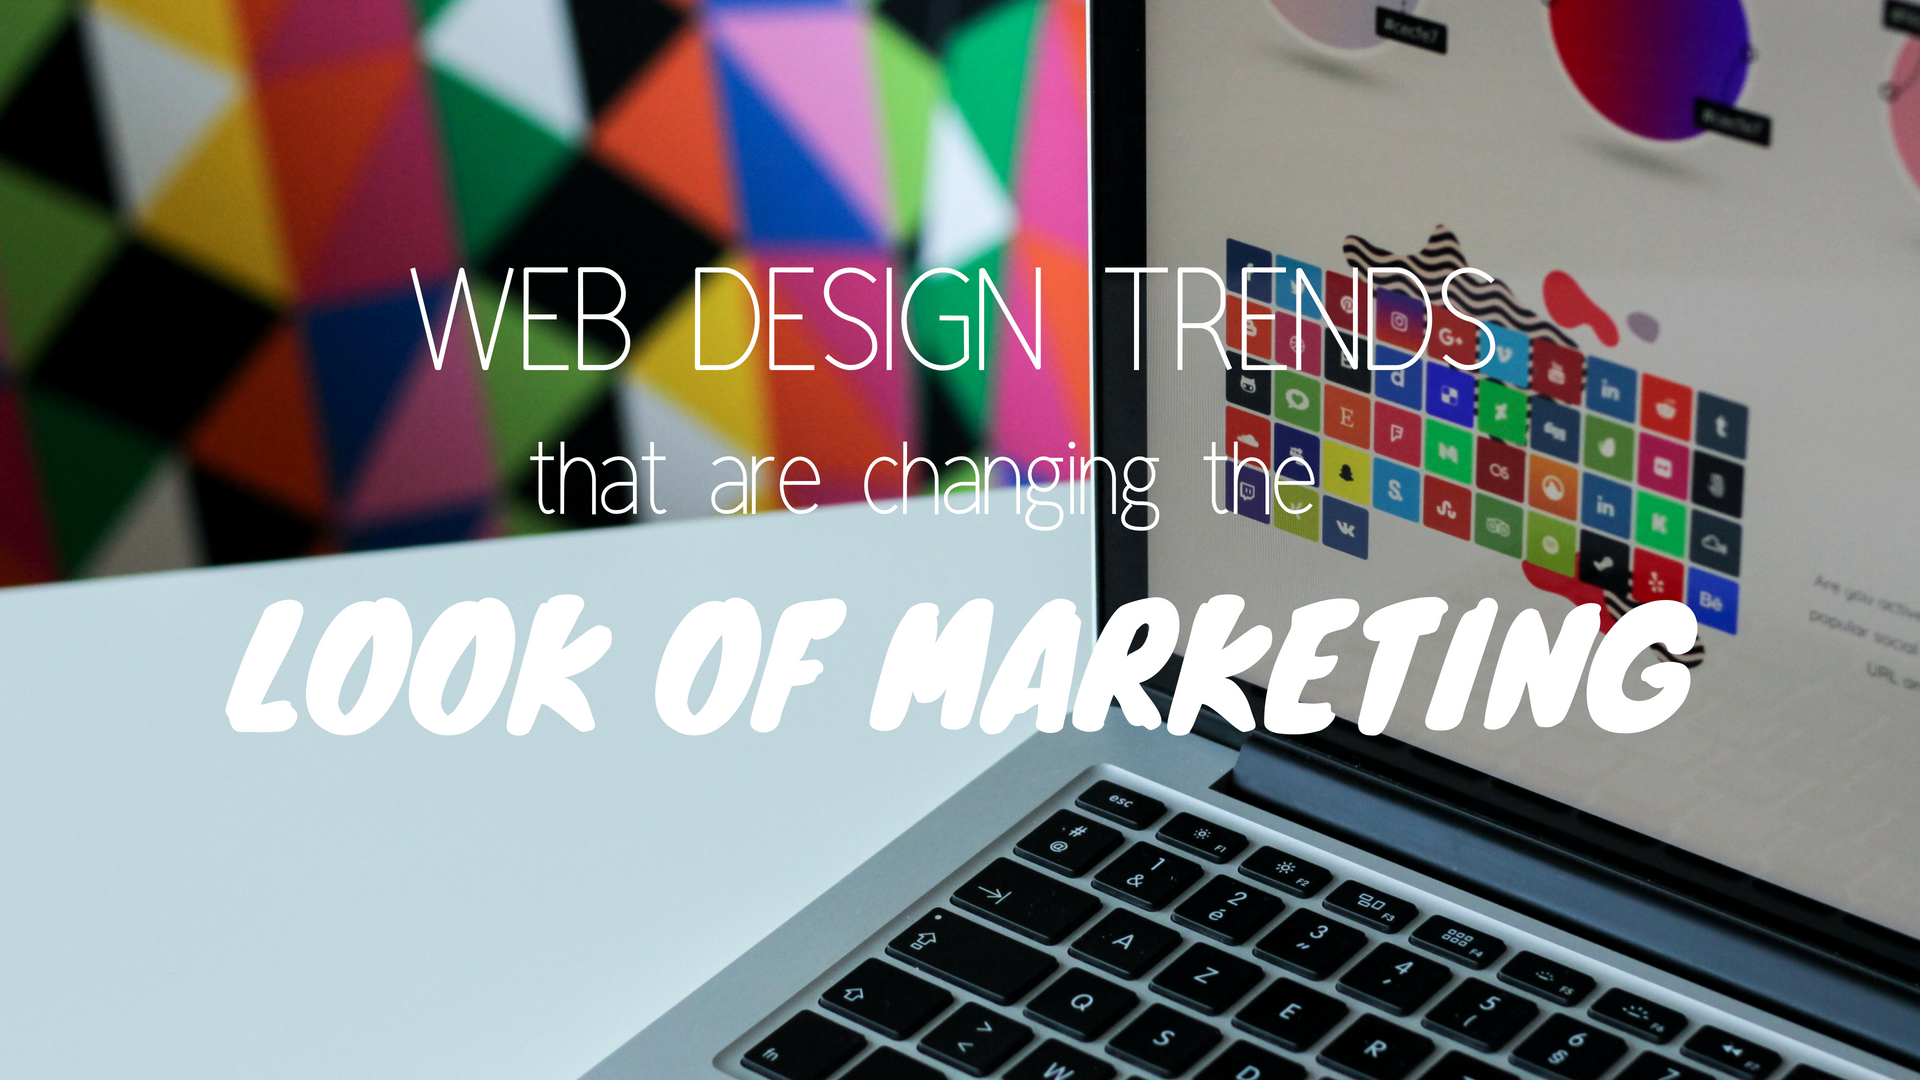 6 Web Design Trends That Are Changing the Look of Marketing